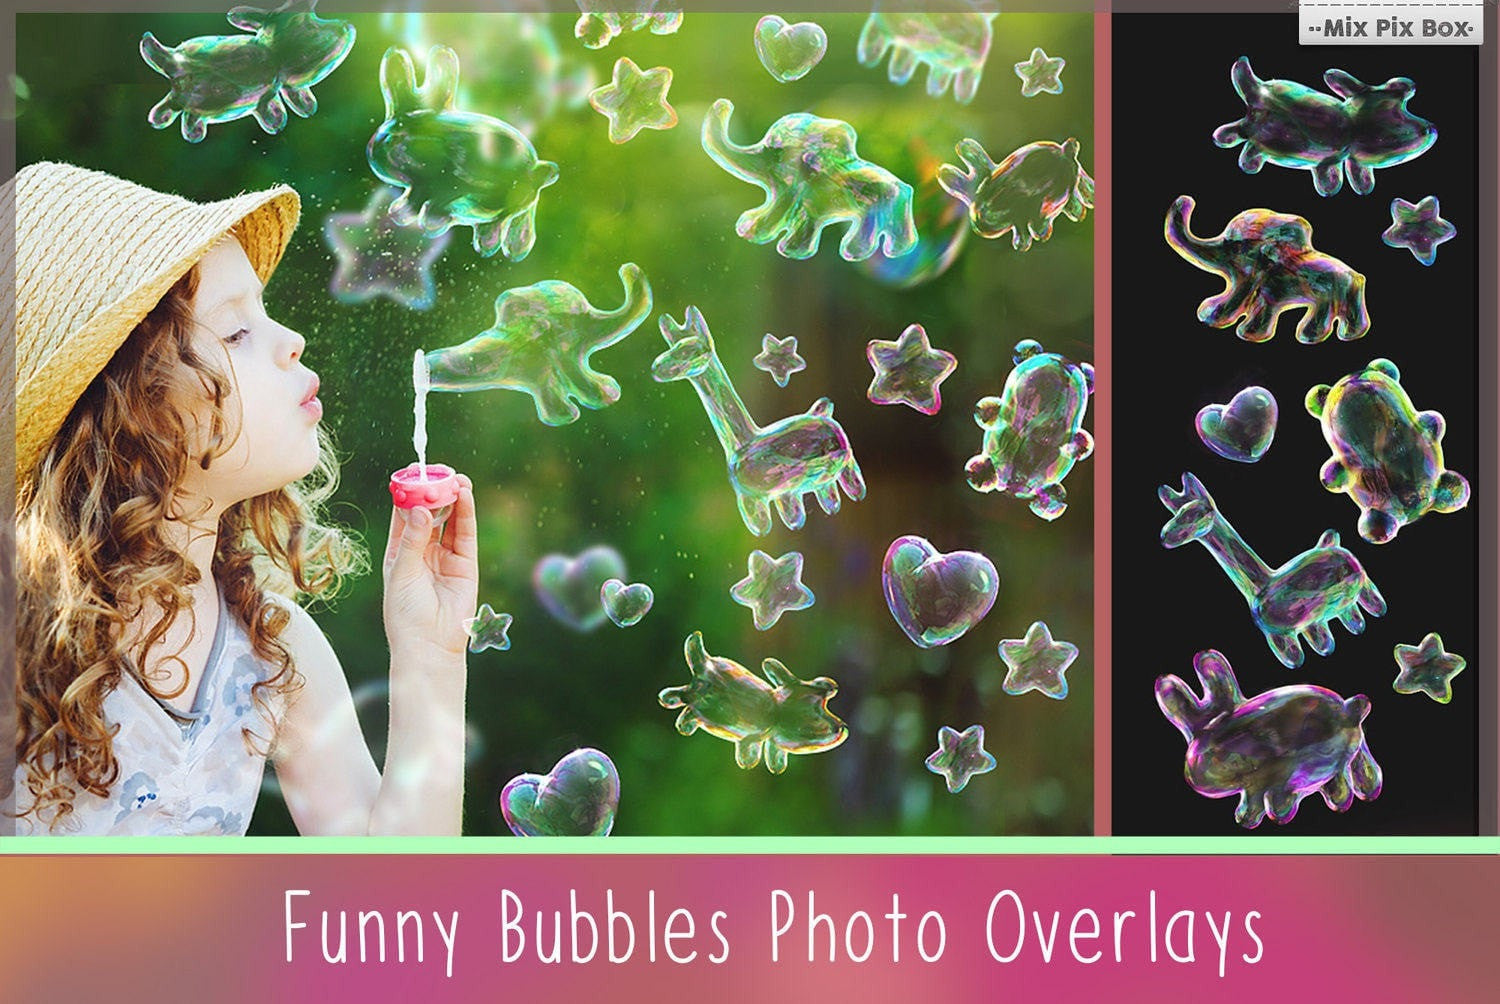 MixPixBox Overlays Funny Bubbles Photo Overlays